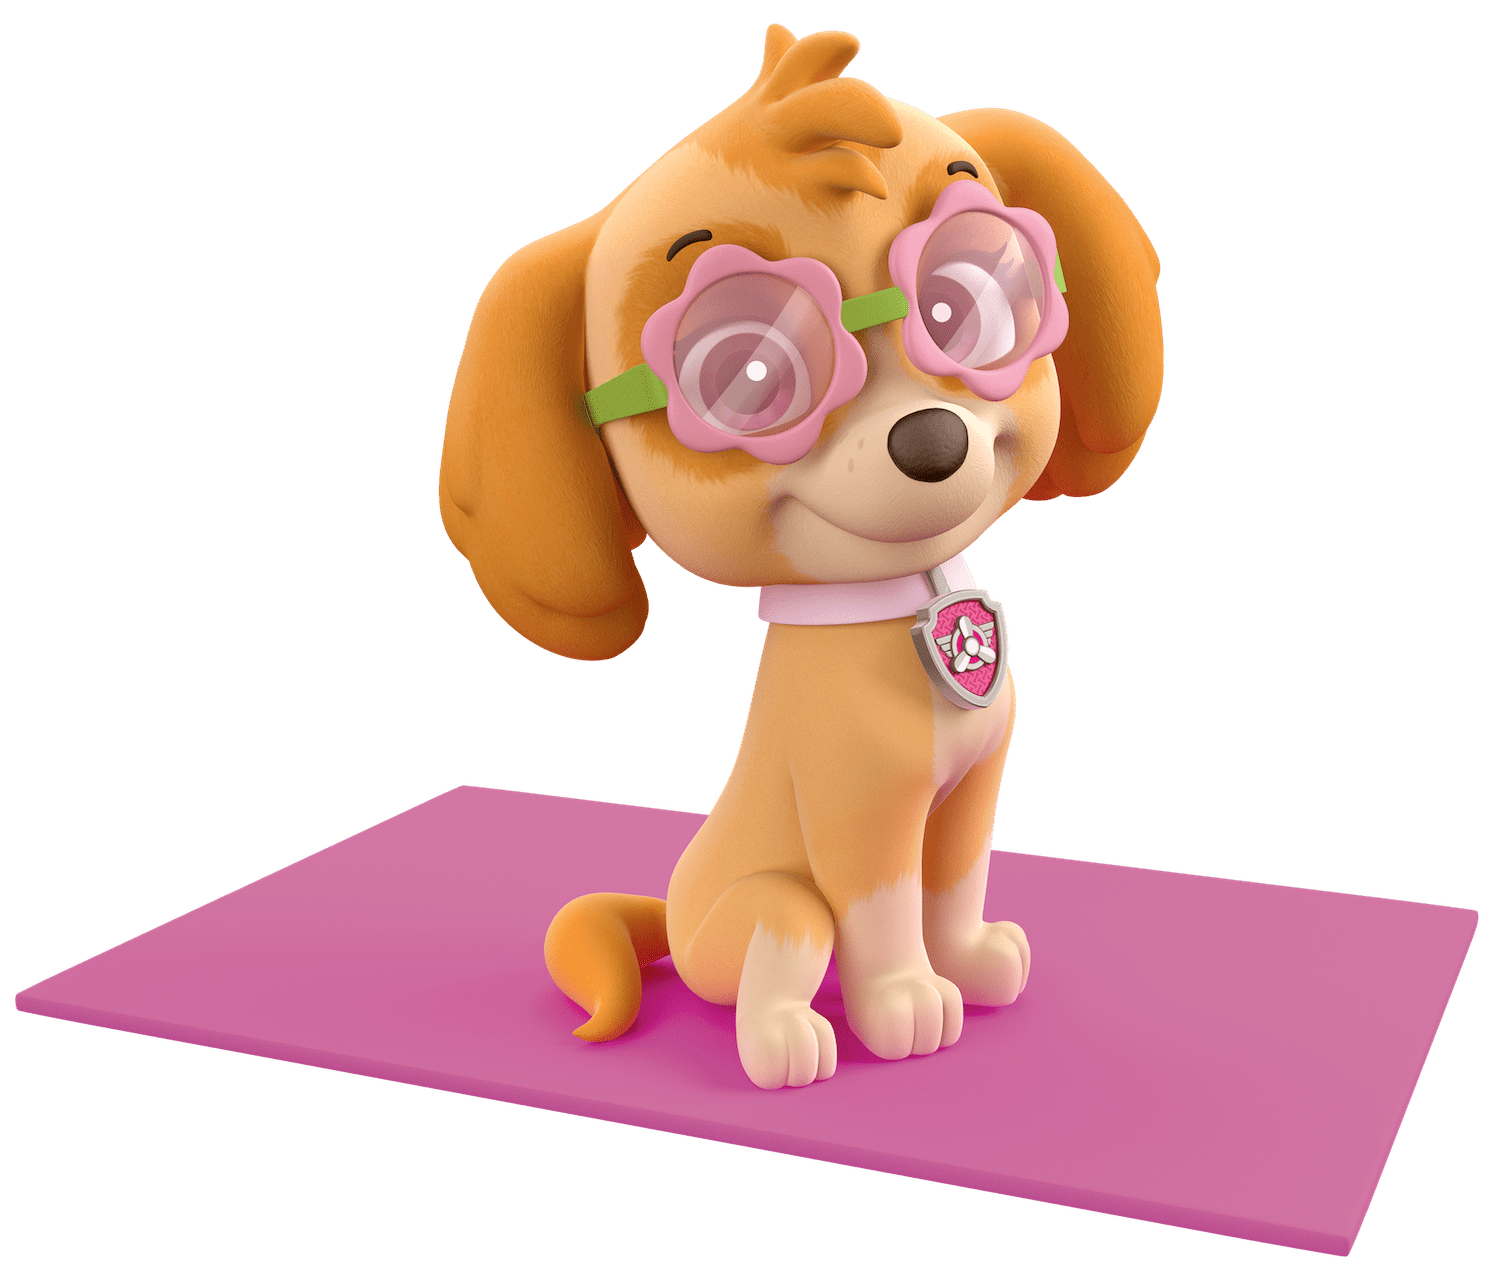 Clipart dog toy clipart freeuse stock 28+ Collection of Skye Paw Patrol Clipart | High quality, free ... clipart freeuse stock